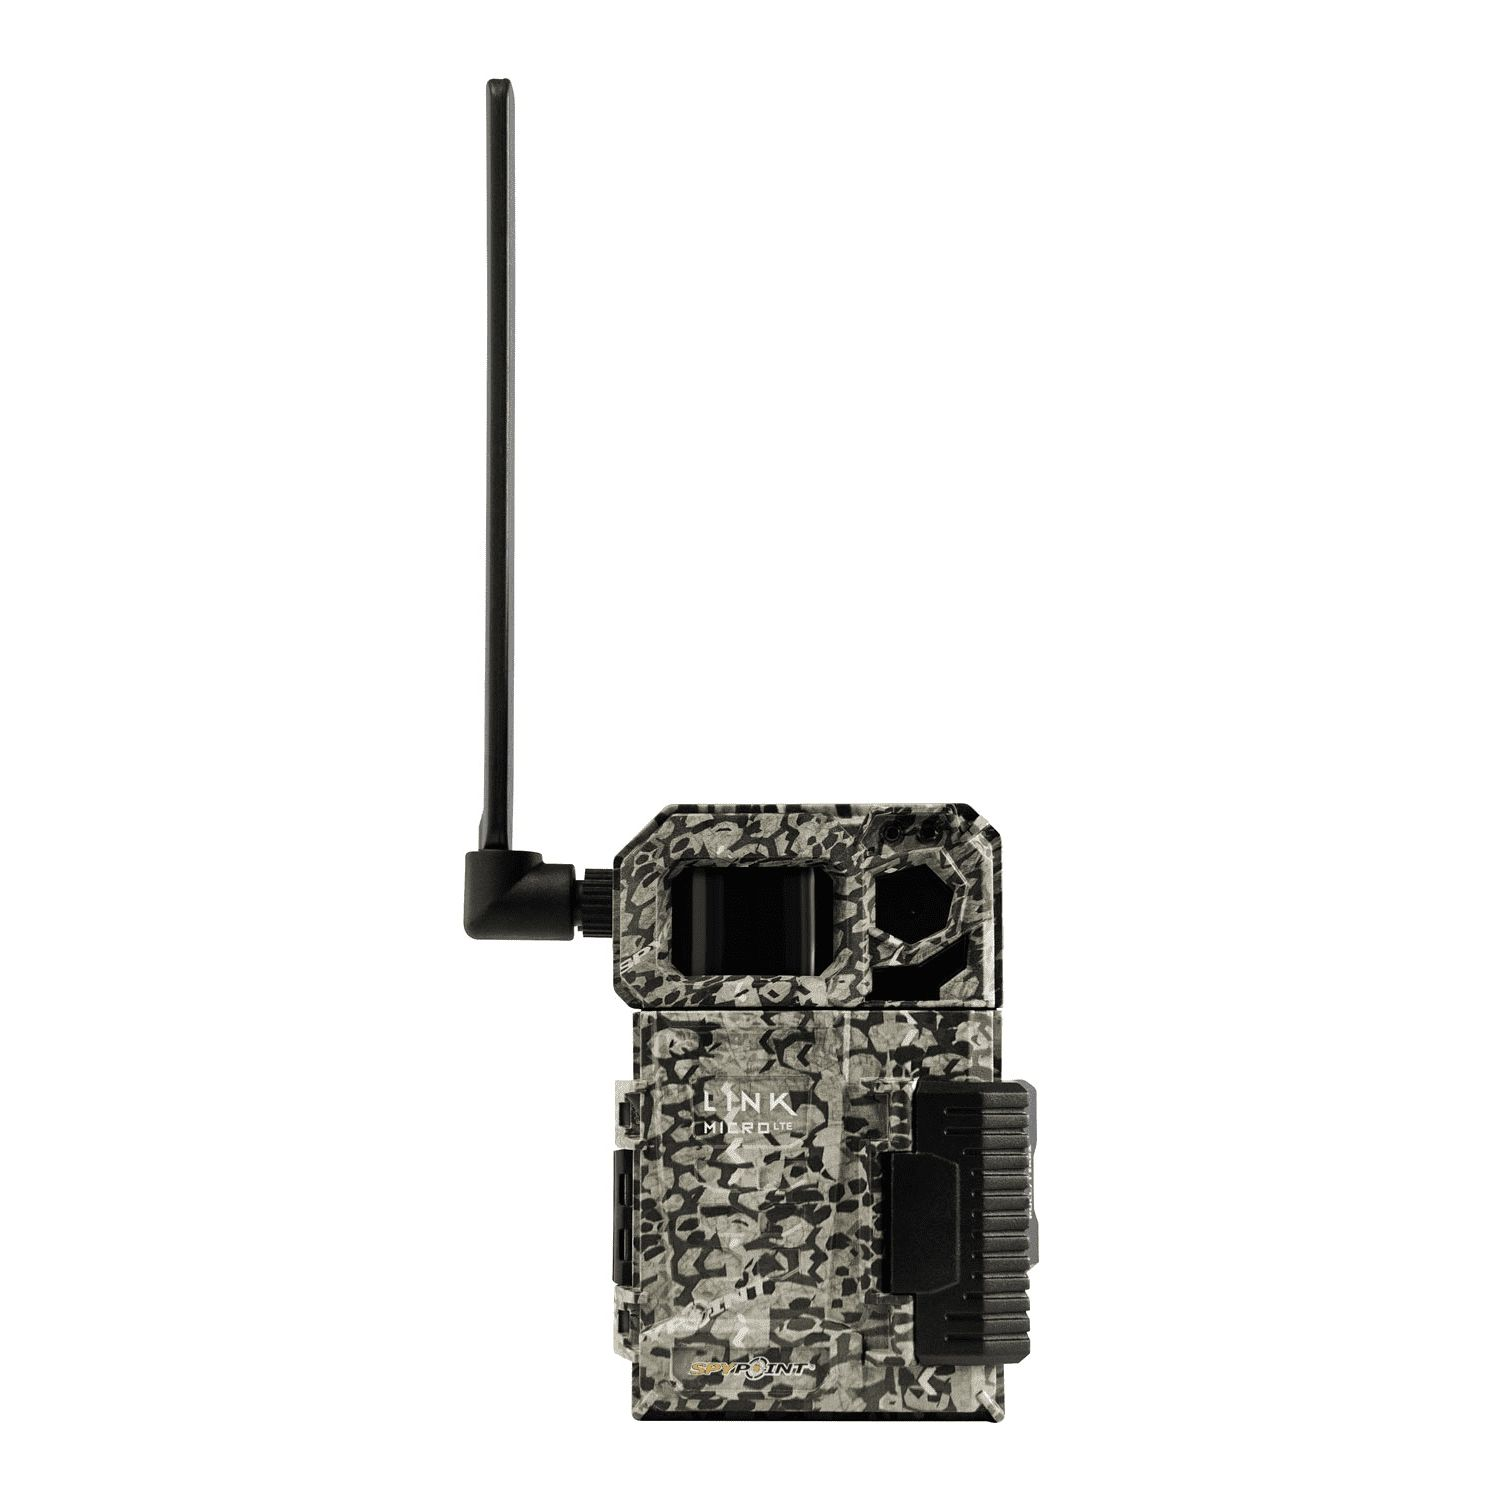 Spypoint Link Micro LTE V Cellular Trail Camera